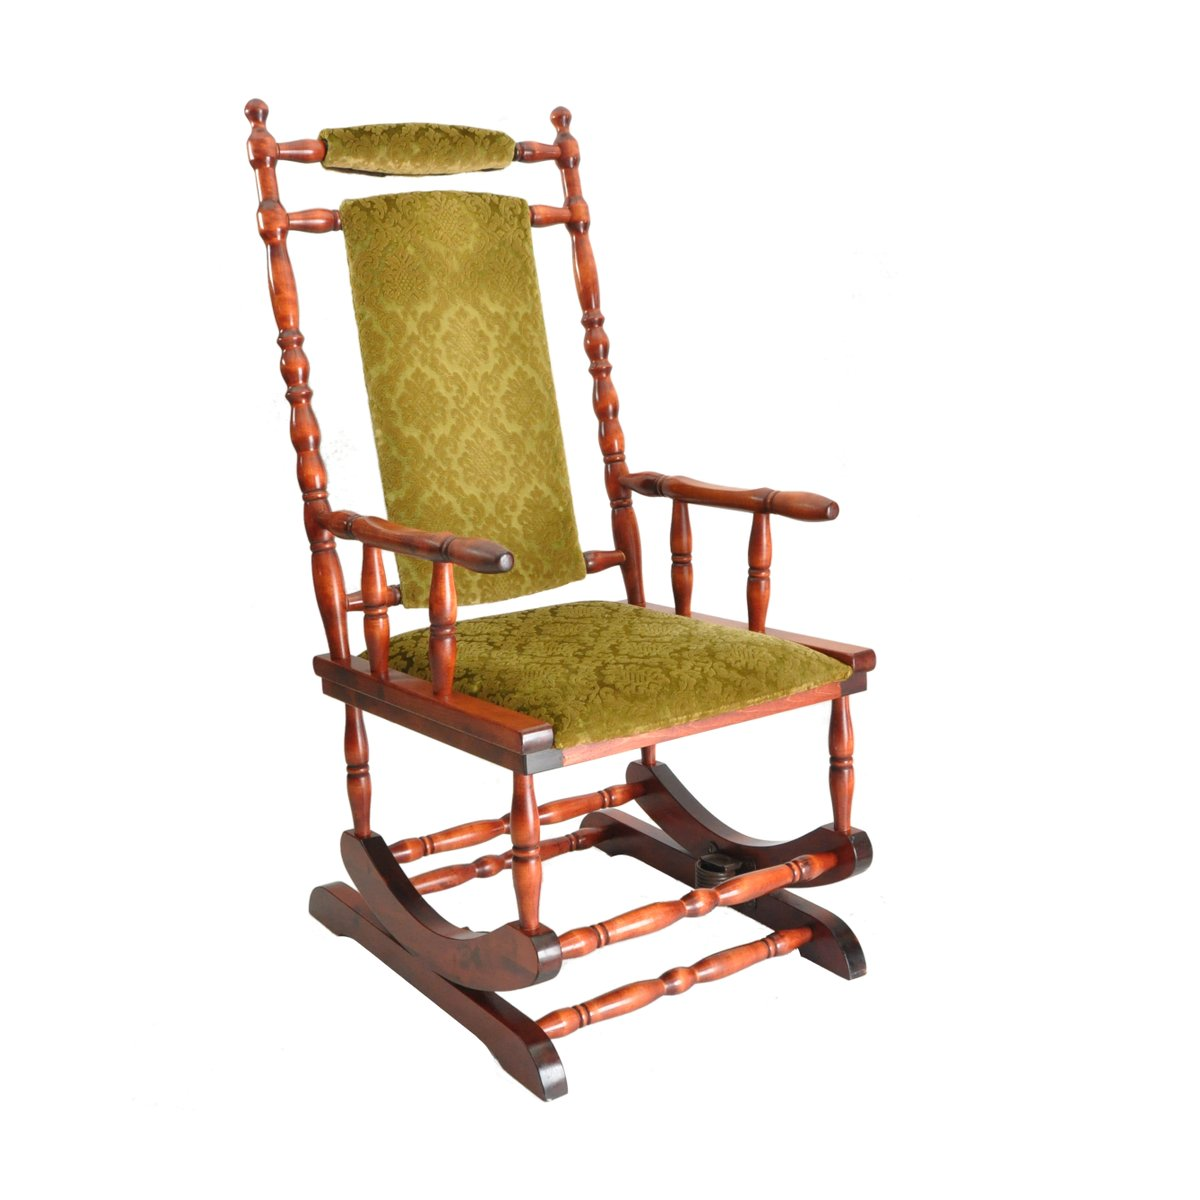 Scandinavian Chair Scandinavian Wooden Rocking Chair 1950s For Sale At Pamono